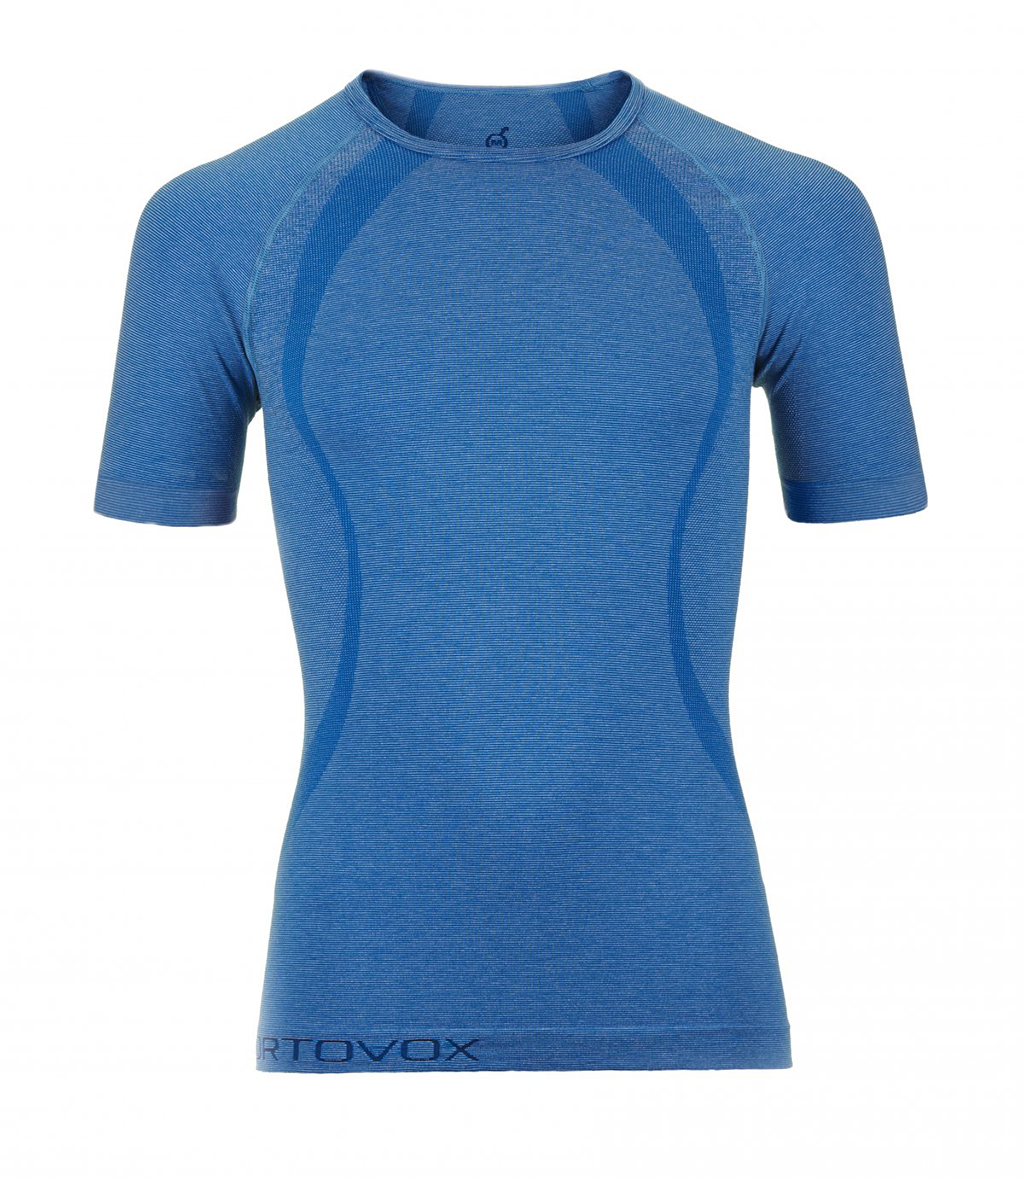 Ortovox 140 Merino Competition Cool Short Sleeve